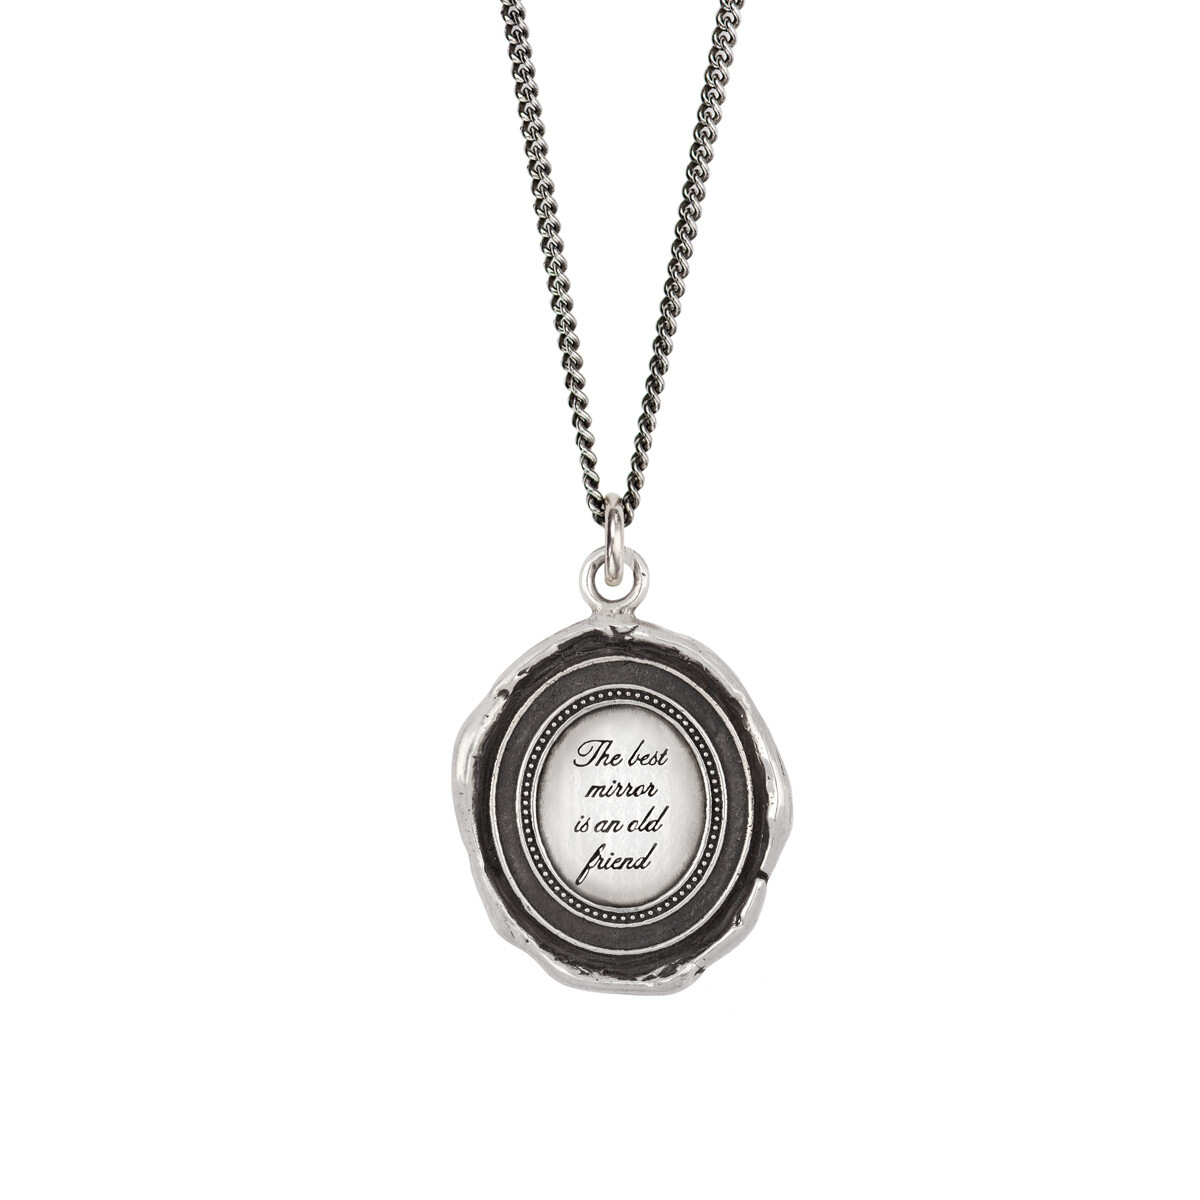 PYRRAH Mirror Pendant with Necklace